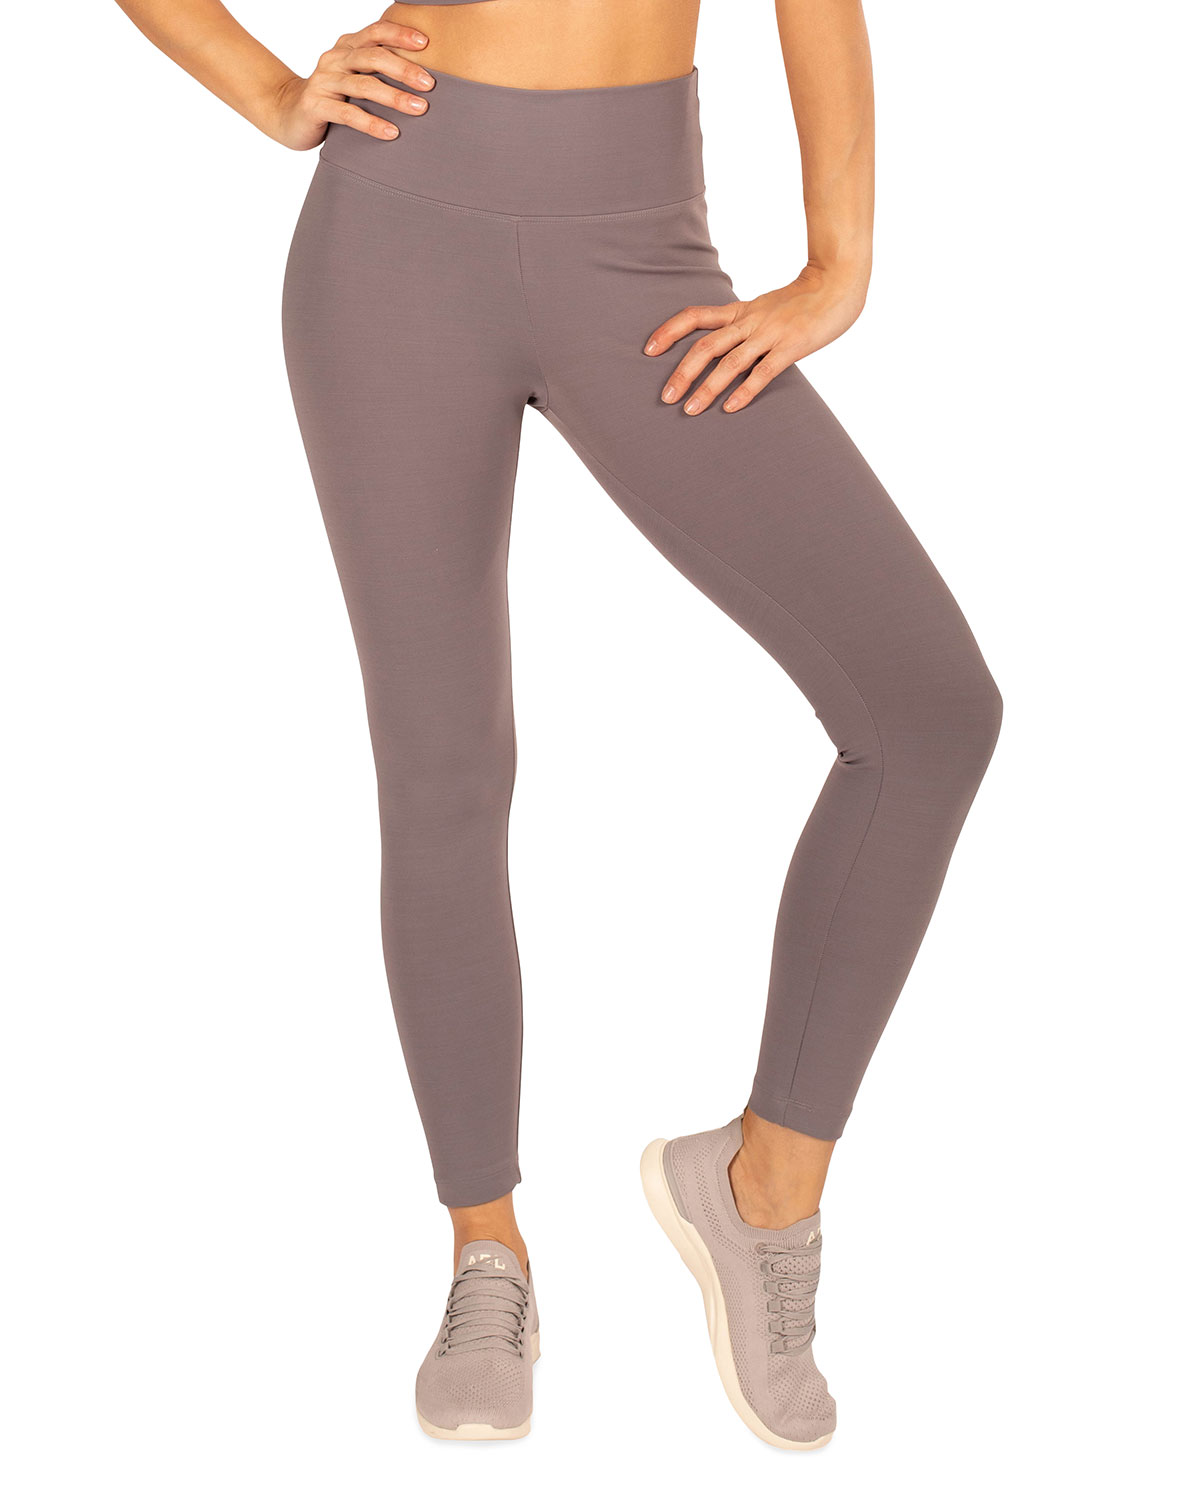 Exceed High-Rise Active Leggings